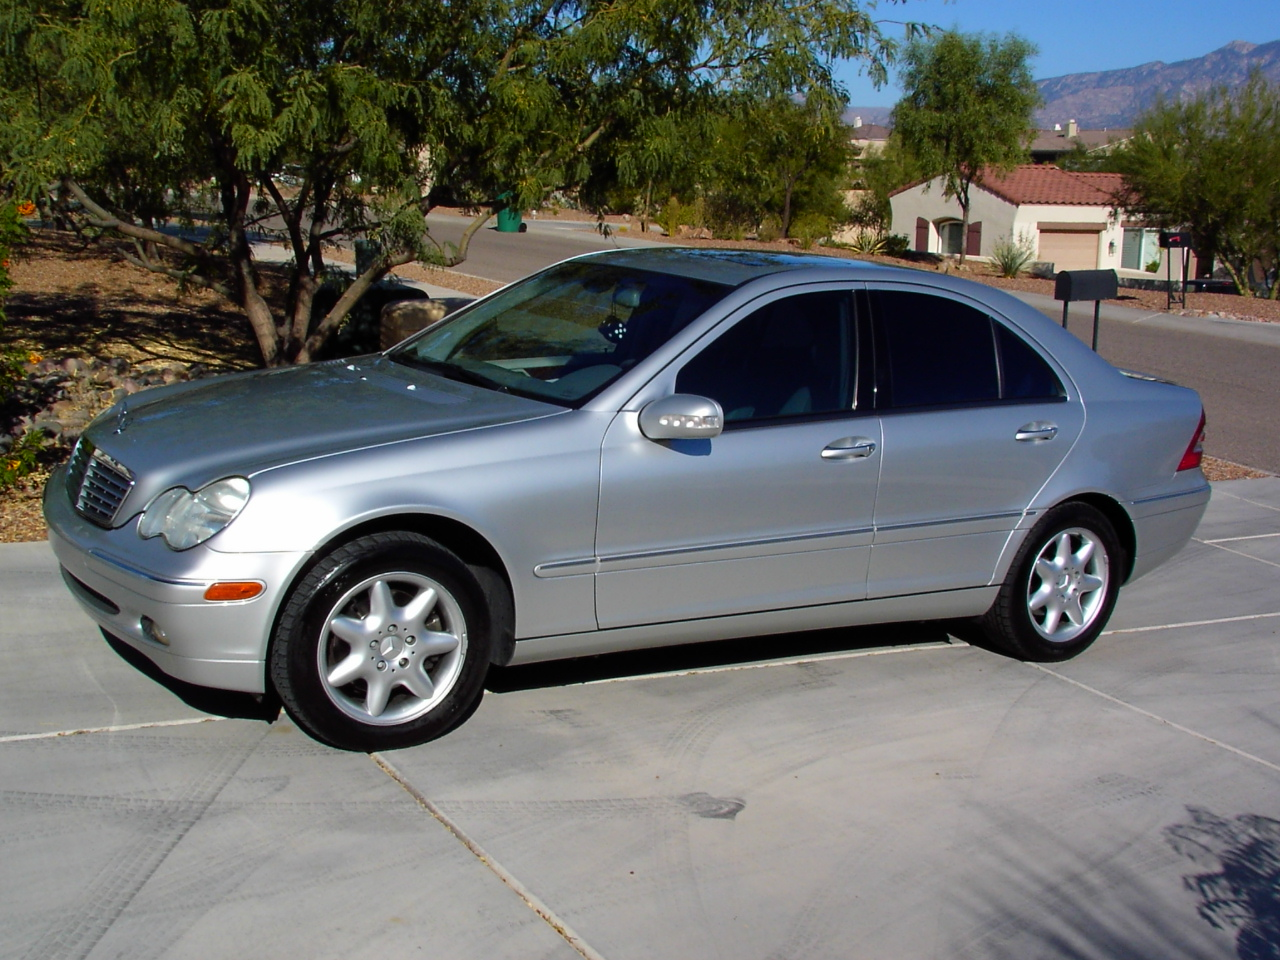 2001 mercedes benz c class information and photos for 2001 mercedes benz c320 owners manual